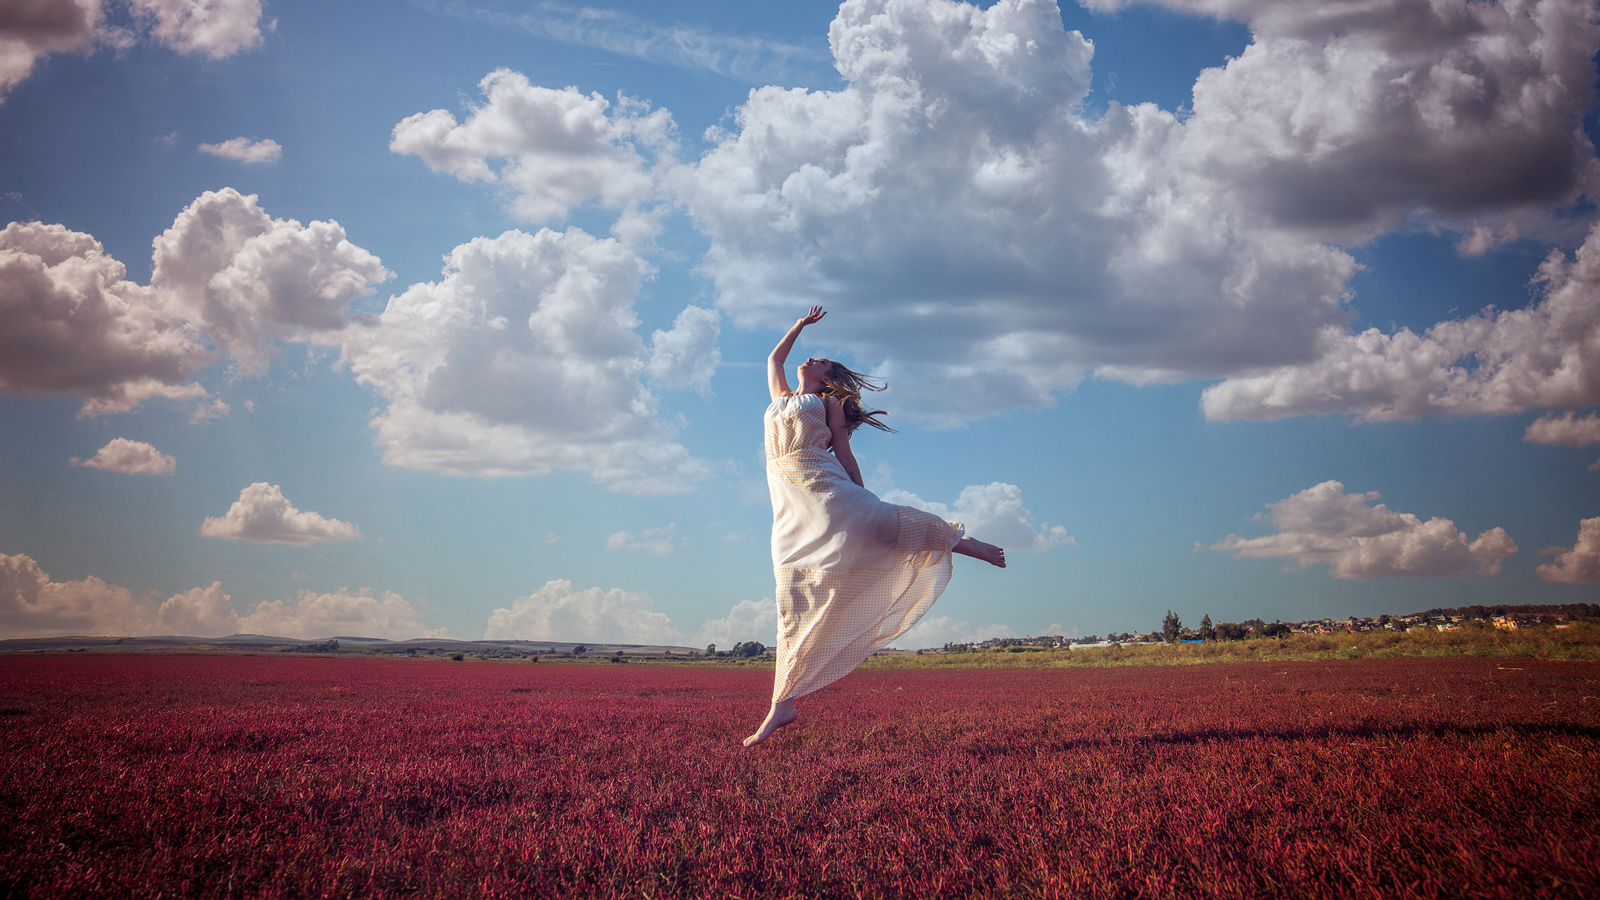 This is how to find joy: 4 simple secrets to the good life